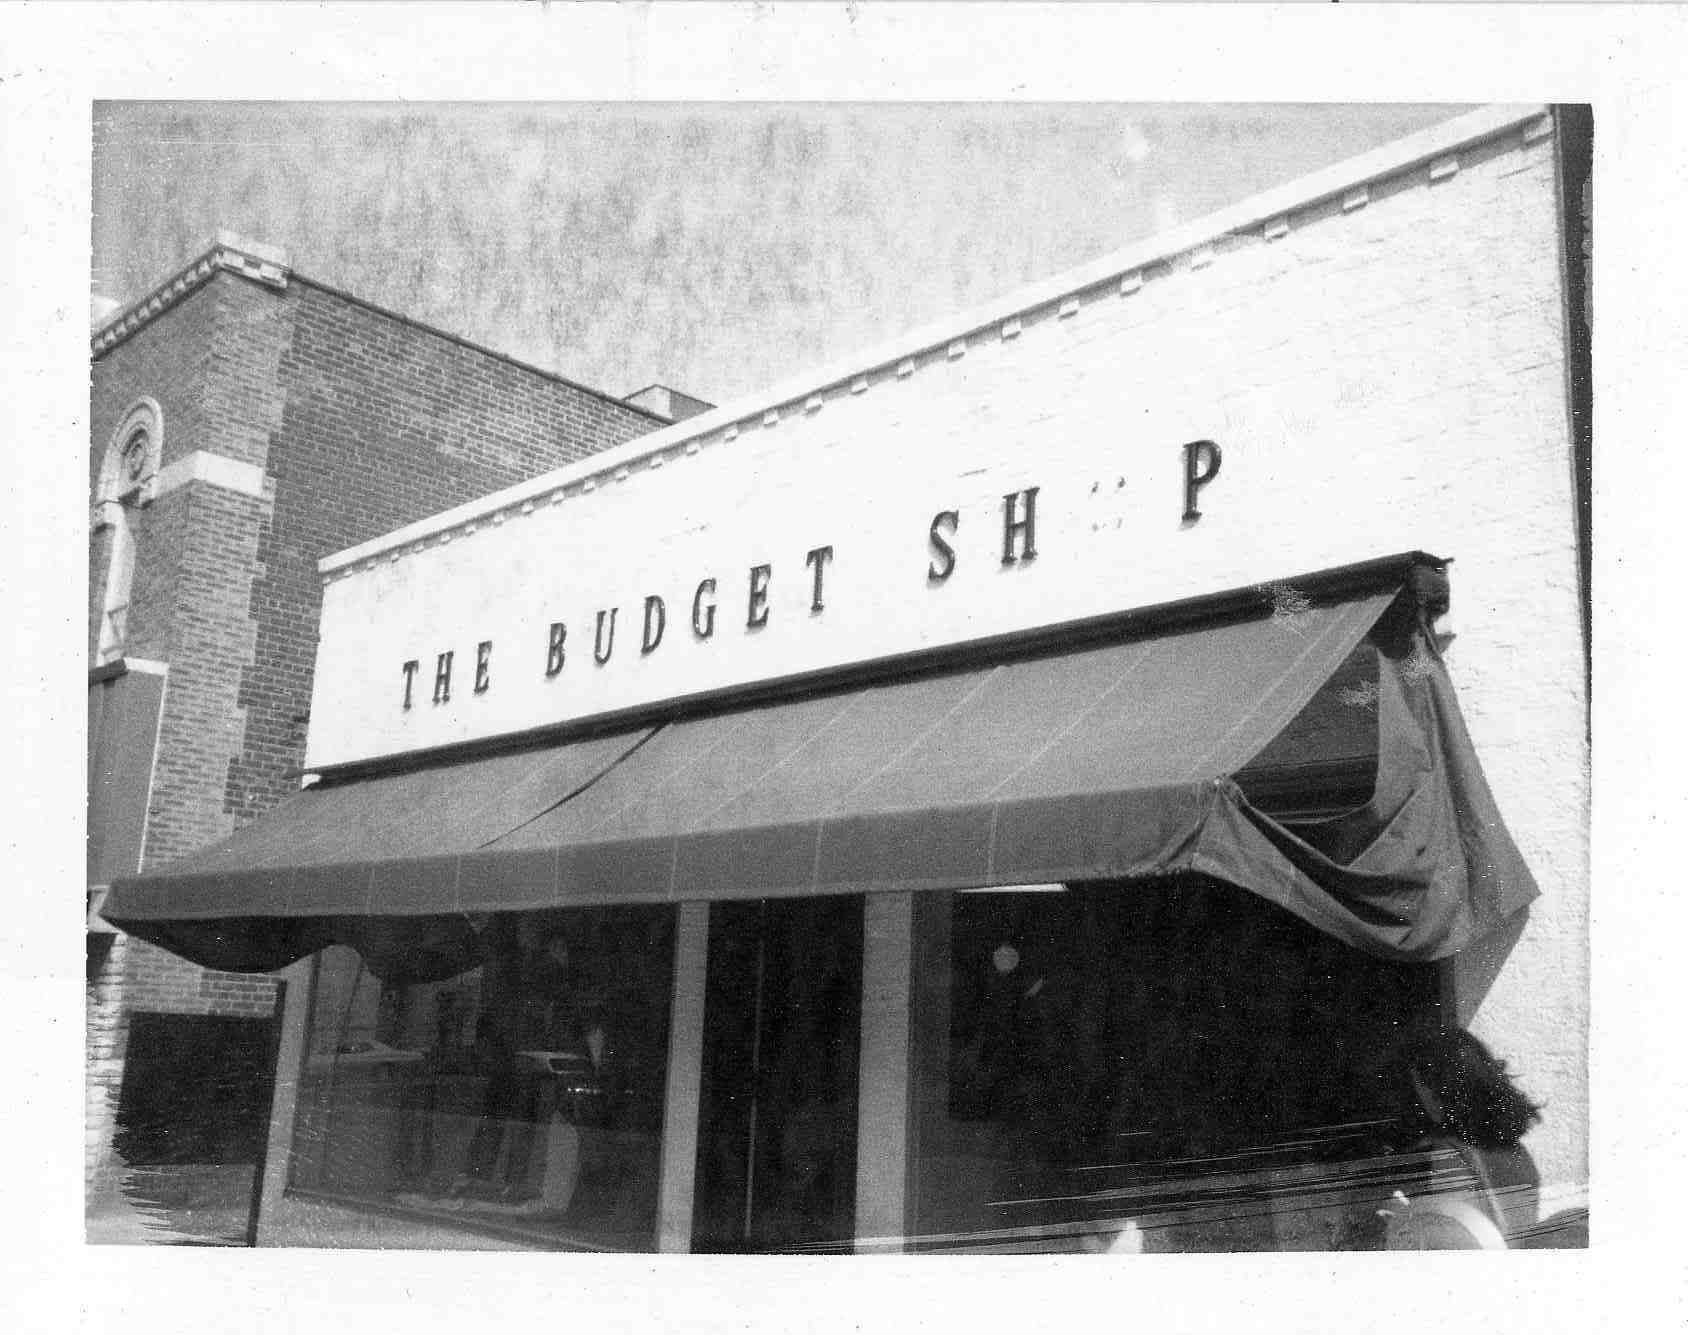 The Budget Shop, 1974 image